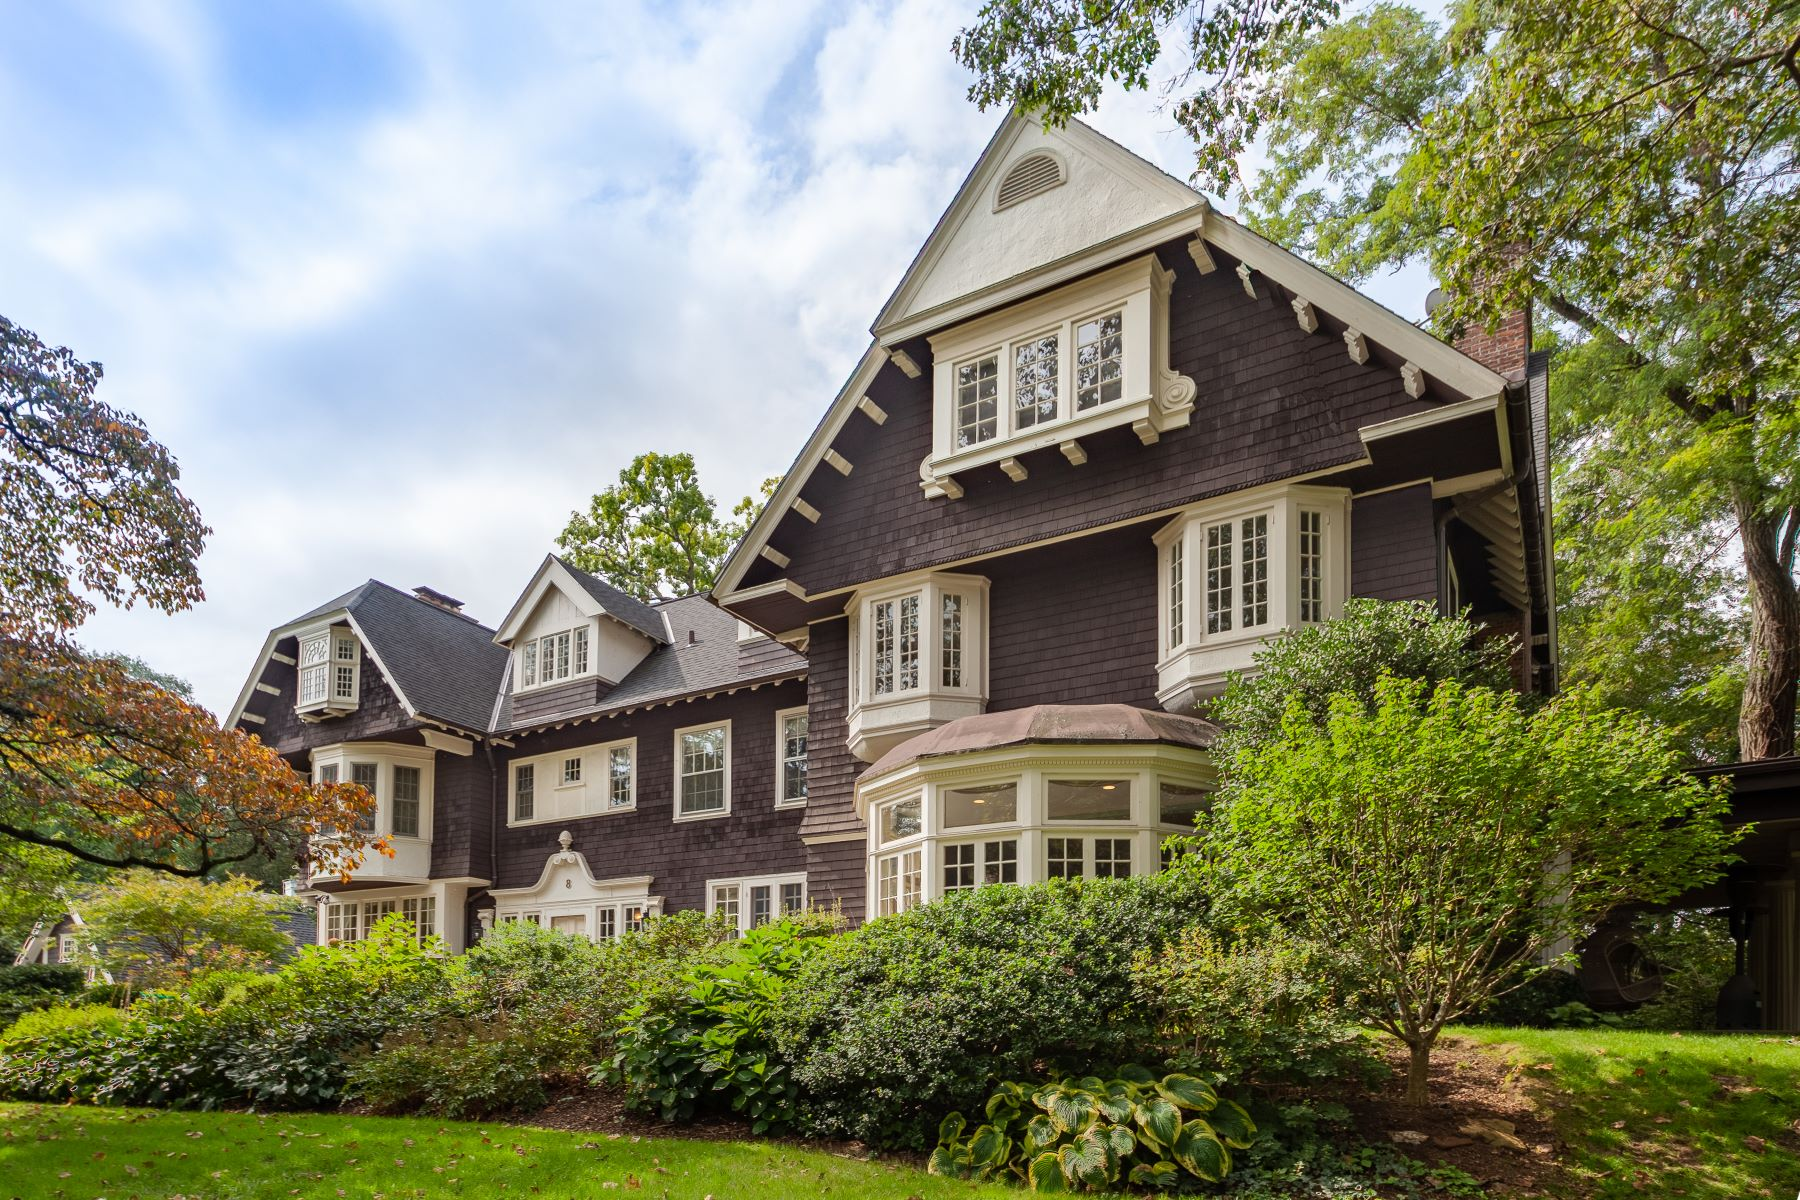 Single Family Homes for Sale at Welcome To 8 Woodland Avenue 8 Woodland Avenue Bronxville, New York 10708 United States